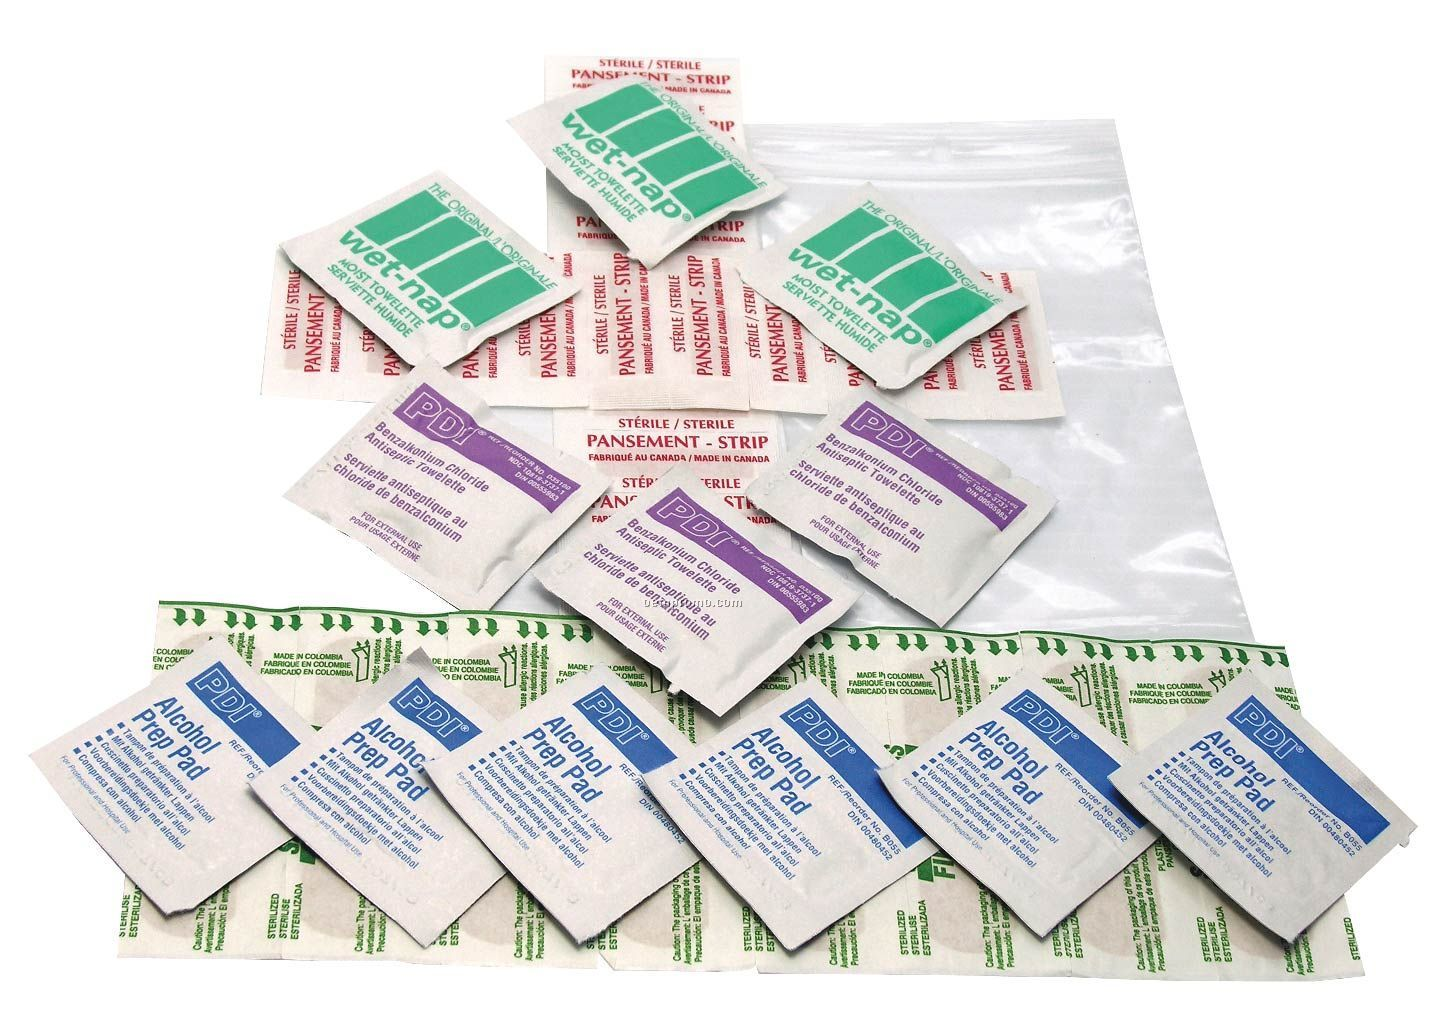 40 Piece First Aid Kit (Blank)